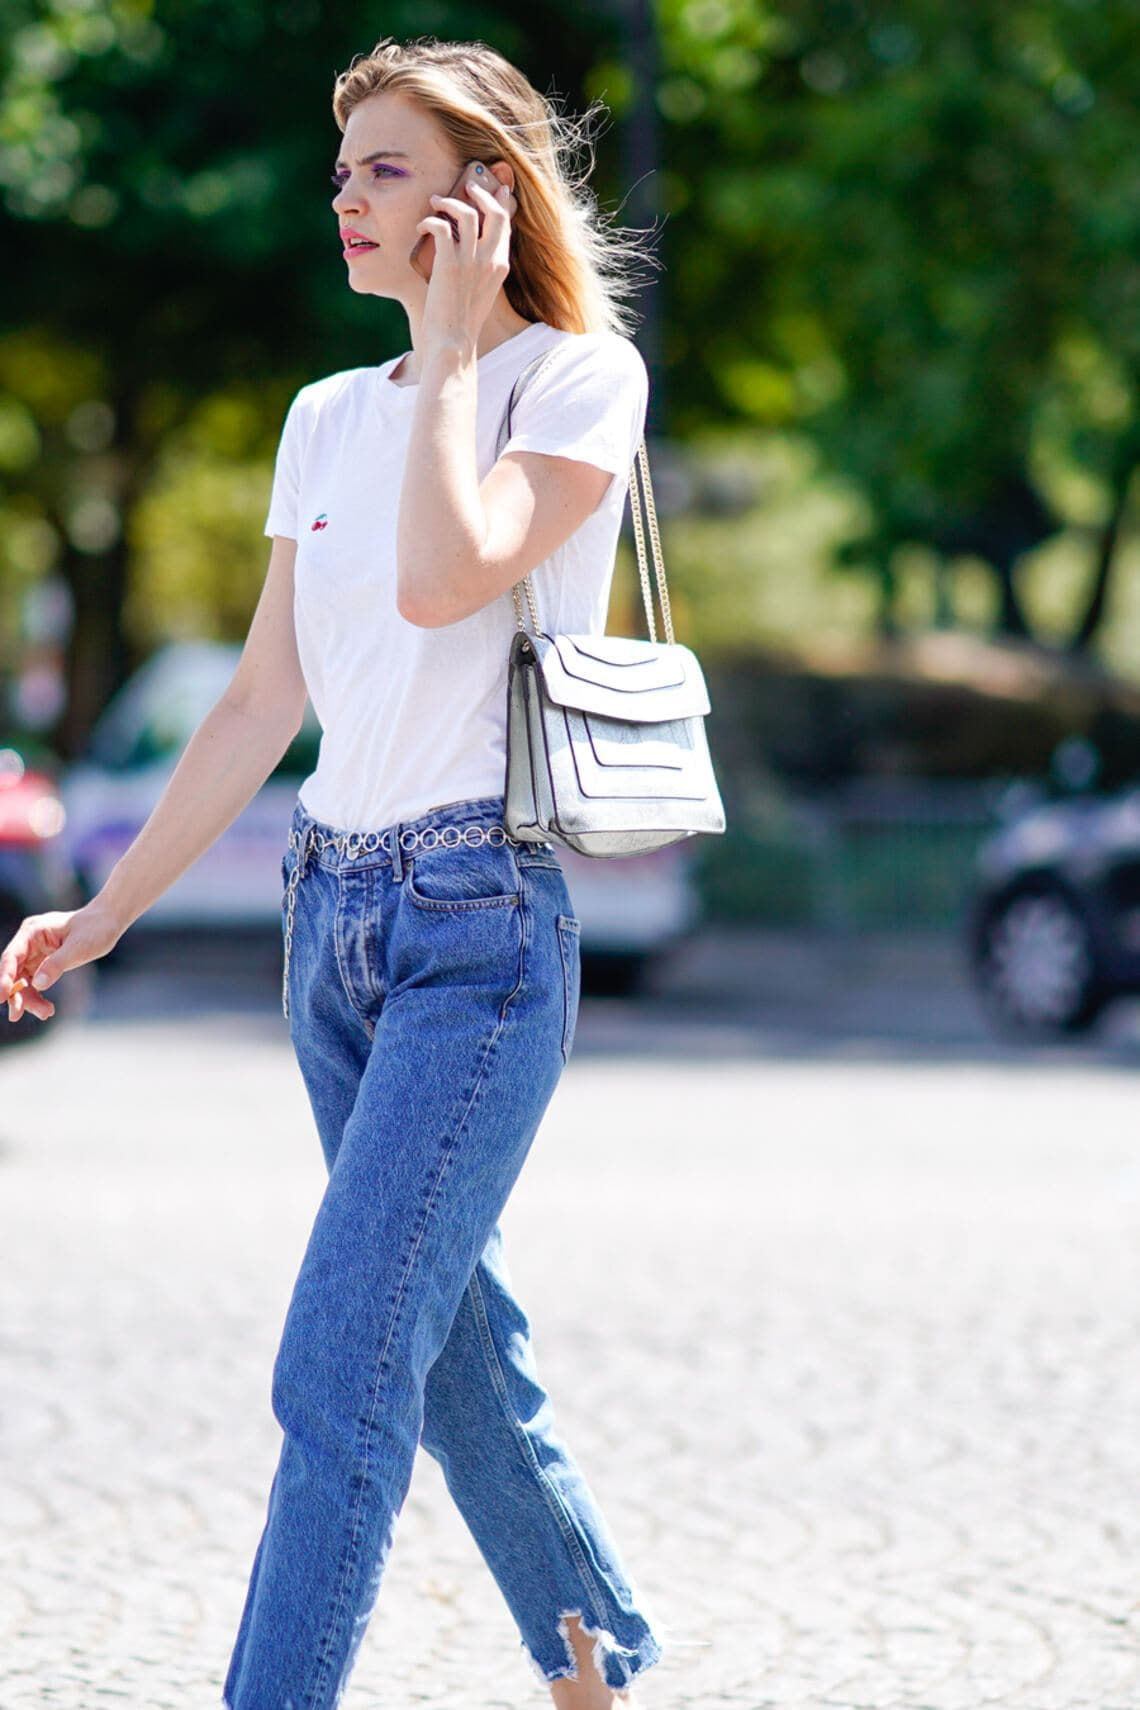 Streetstyle Weisses T-Shirt zur Jeans